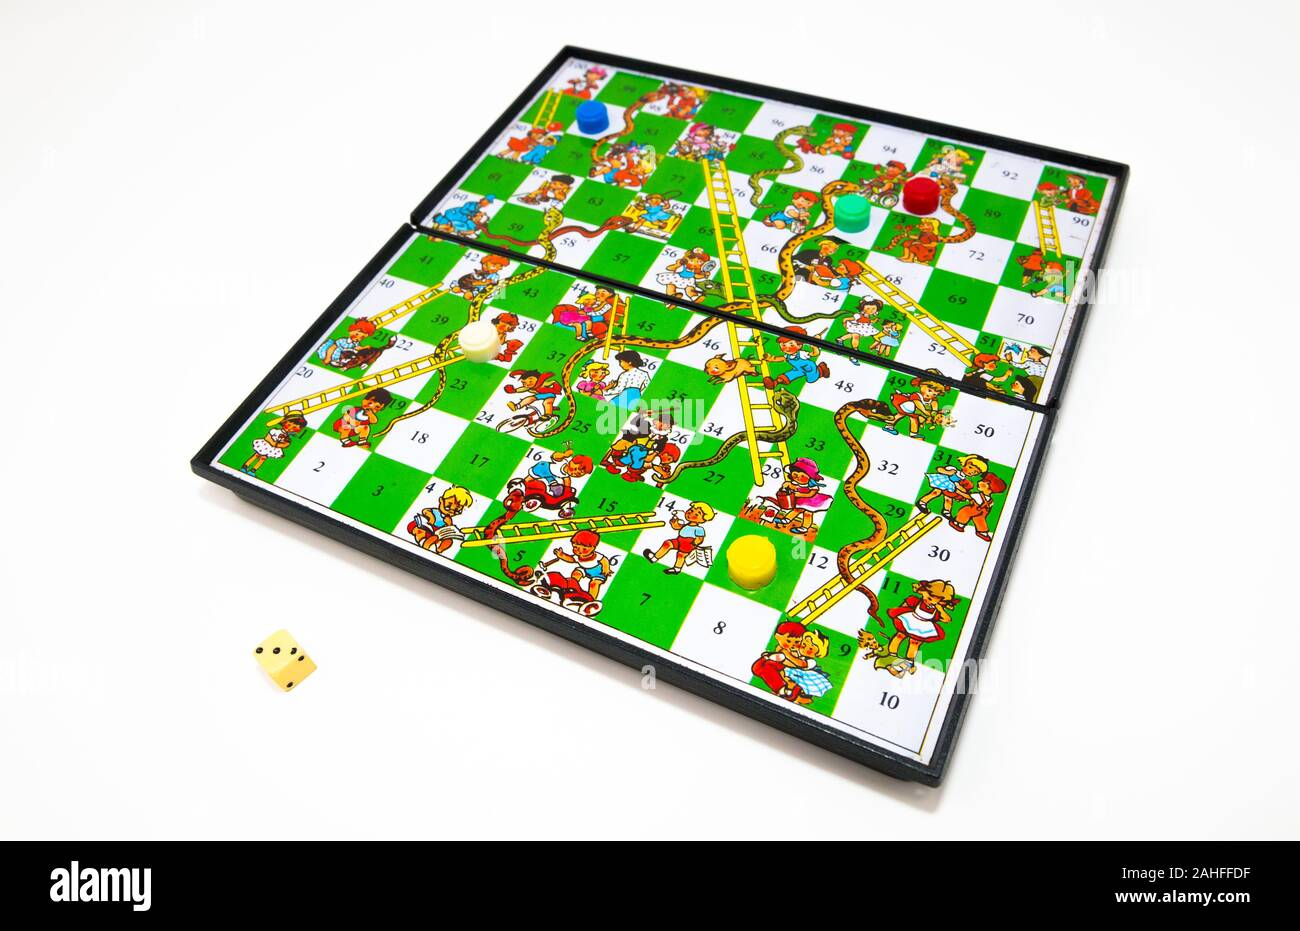 Magnetic Snakes and Ladders childs game. Stock Photo